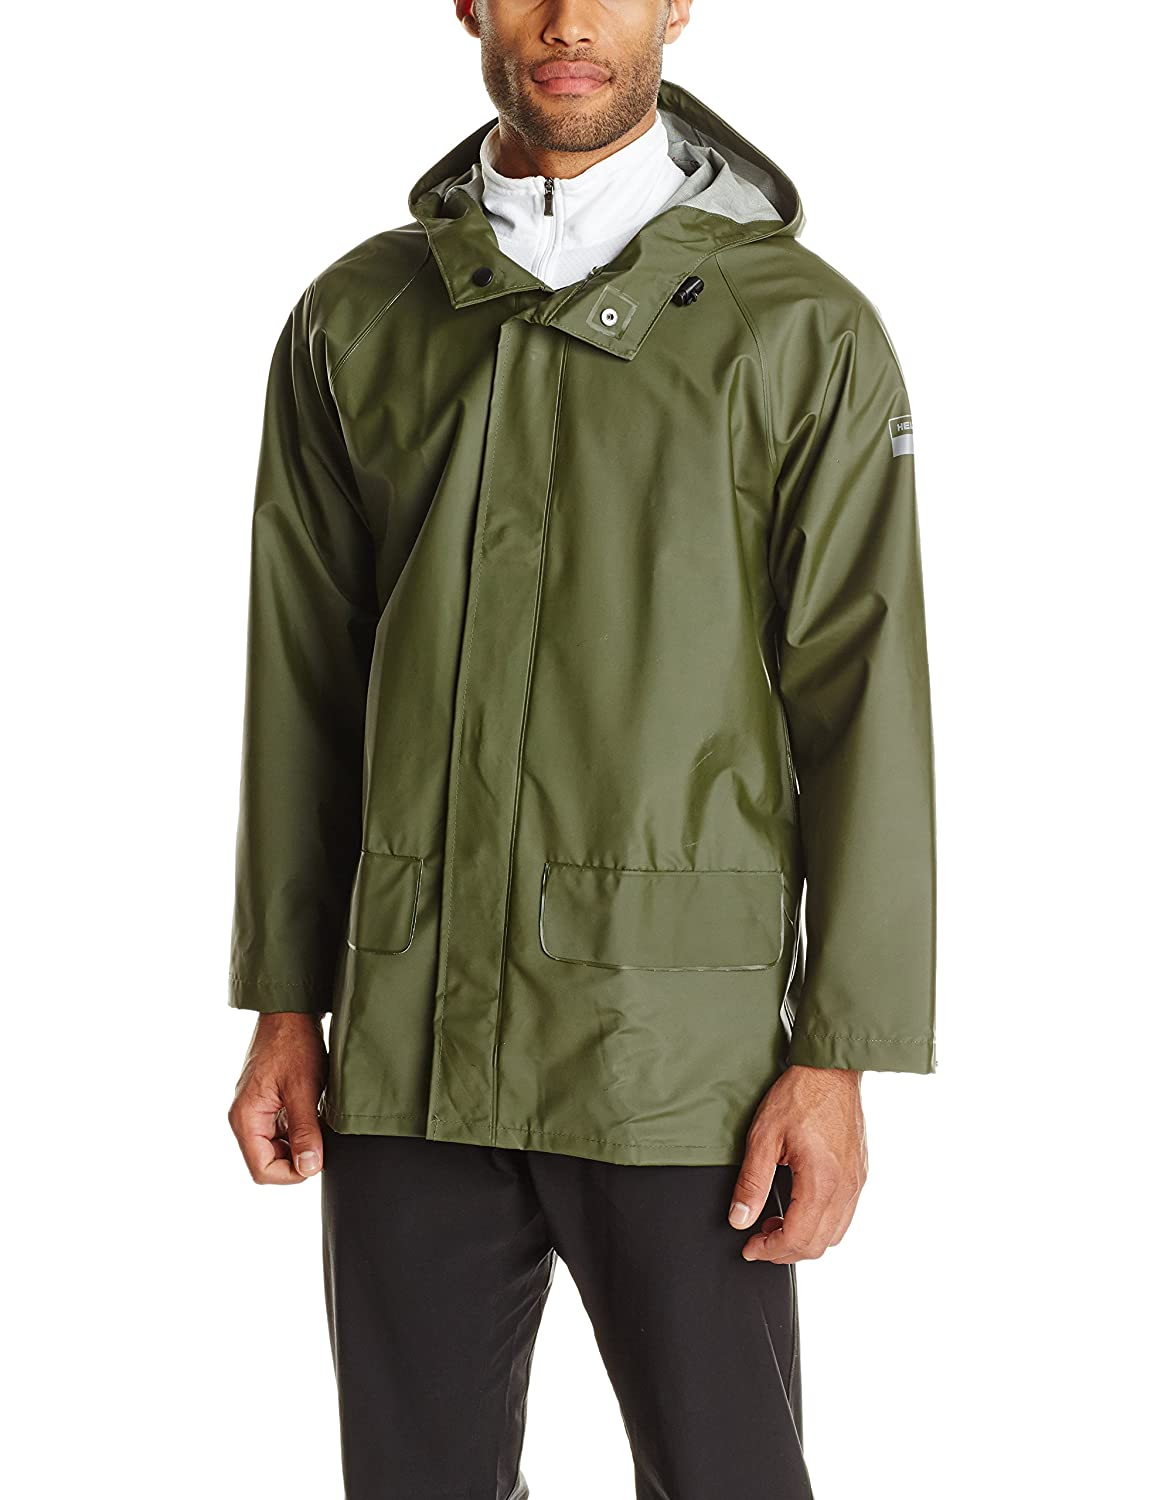 Amazon.com: Helly Hansen Workwear Men's Mandal Rain Jacket: Clothing